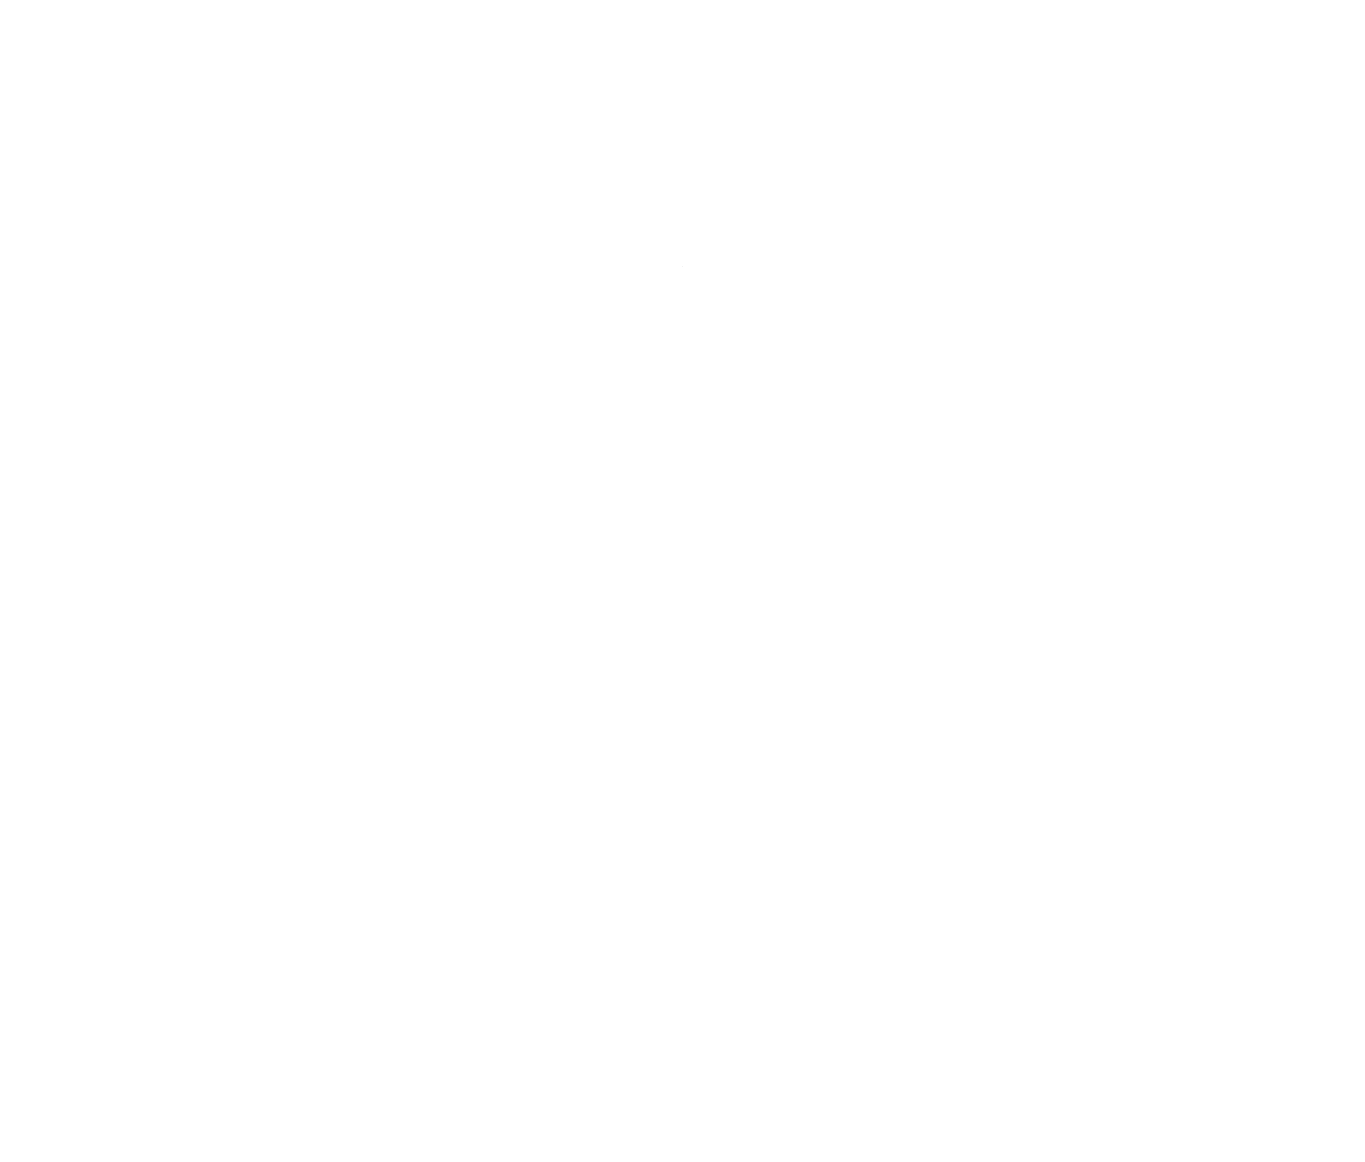 gibsongardens intro text_20190917.png